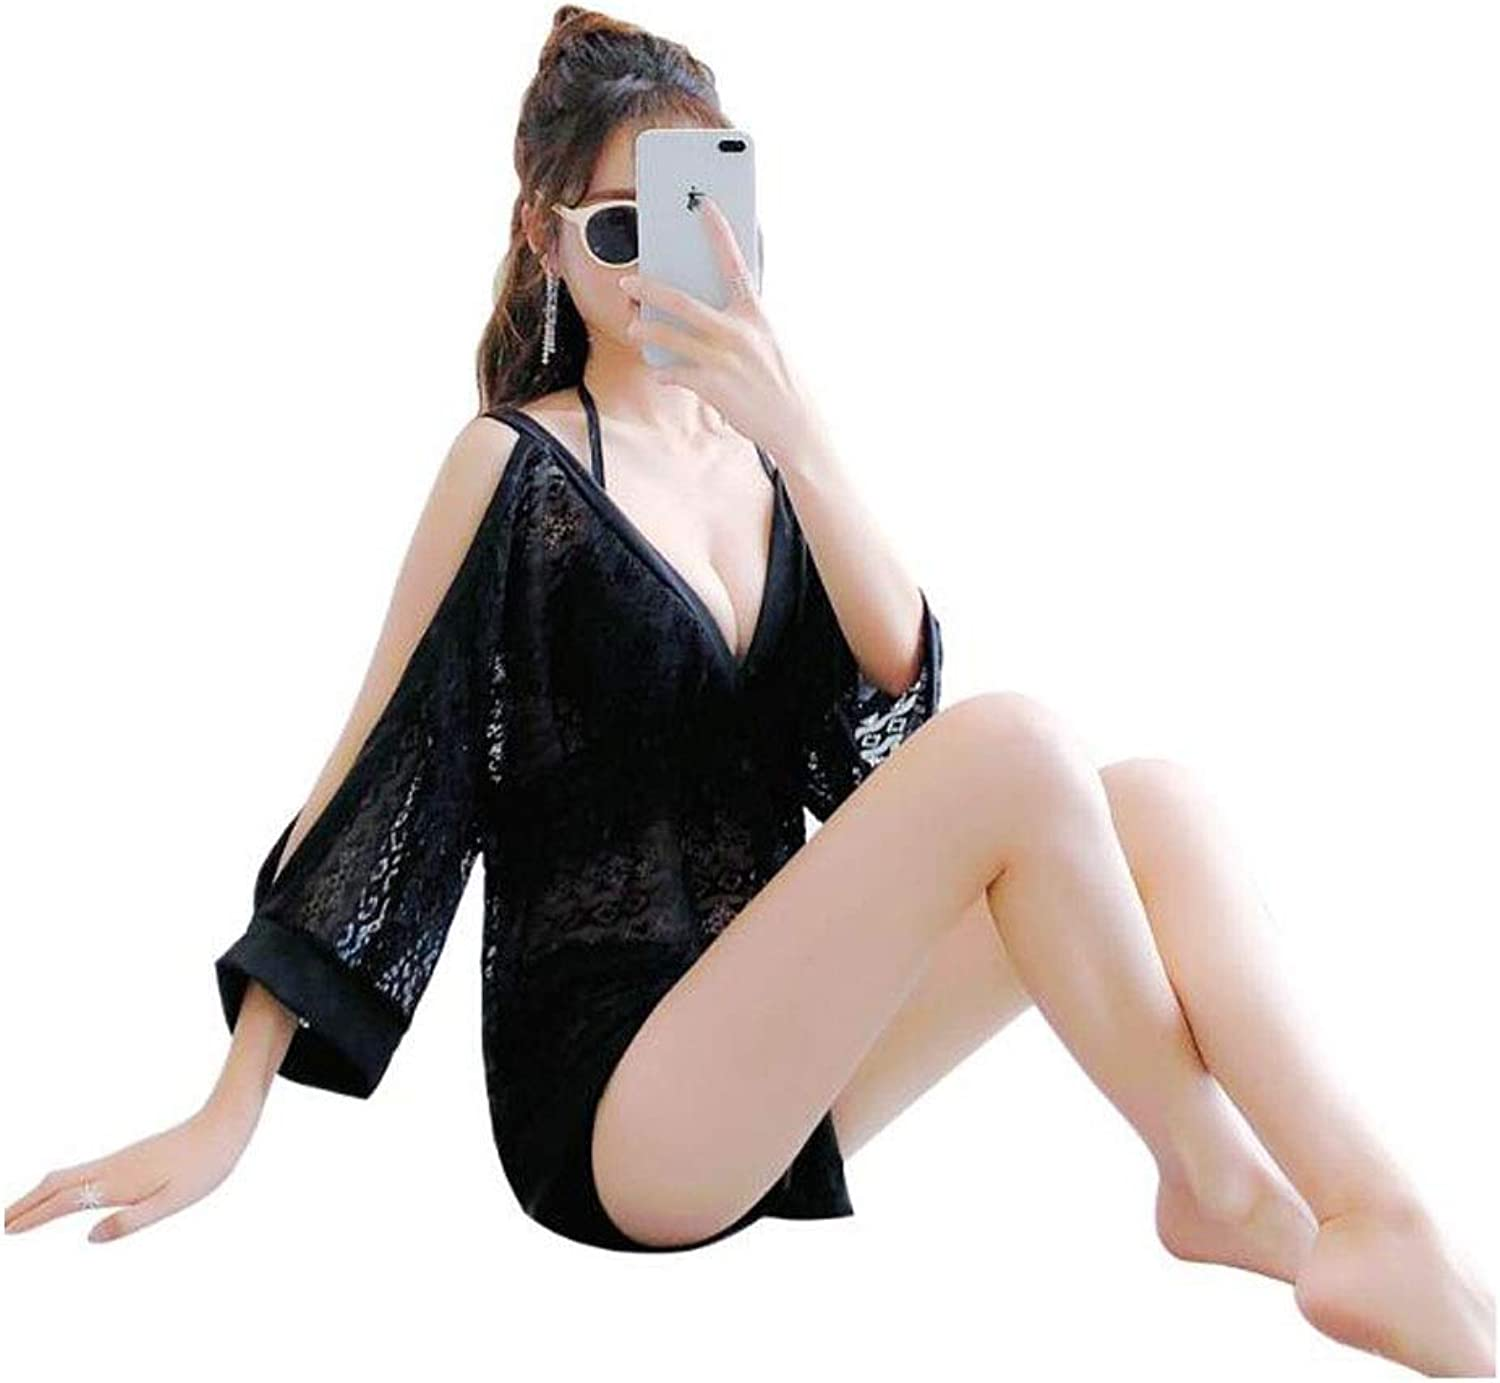 Huijunwenti Women's Swimsuit, TwoPiece Comfortable Sexy Swimsuit, Stylish and Simple, (Size  L, XL, XXL, color  Black) Women's Swimsuit, Sexy Swimsuit